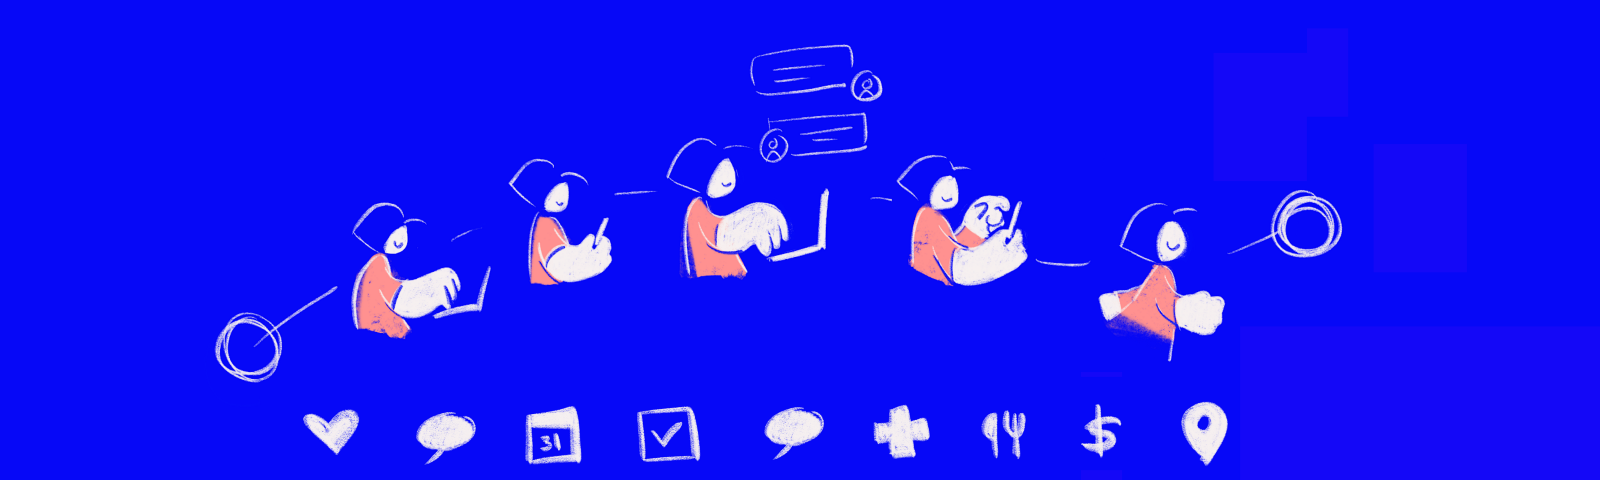 A drawing of a person moving through various actions to achieve a goal—messaging, calendaring, or making payments